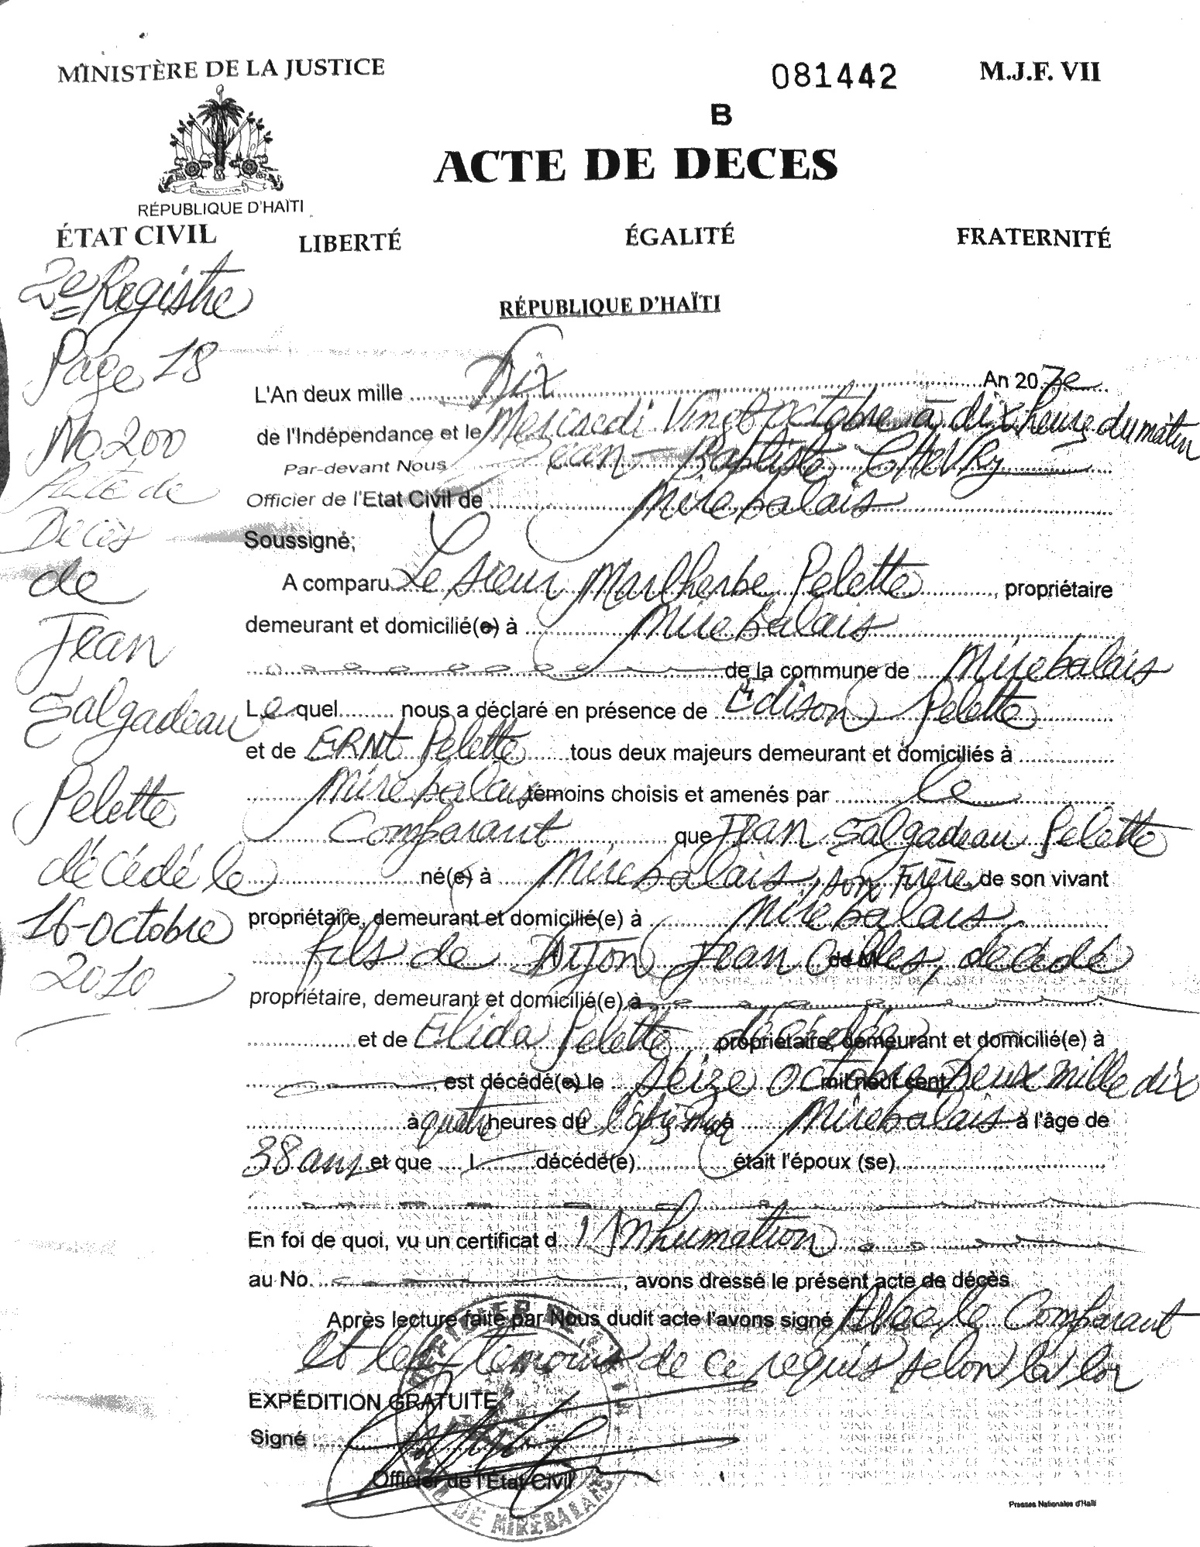 Death certificate pictures images and form of promissory note death certificate of jean salgadeau pelette deathcertificate jeansalgadeaupelette deathcertificate supposed first cholera haitihtml yelopaper Choice Image